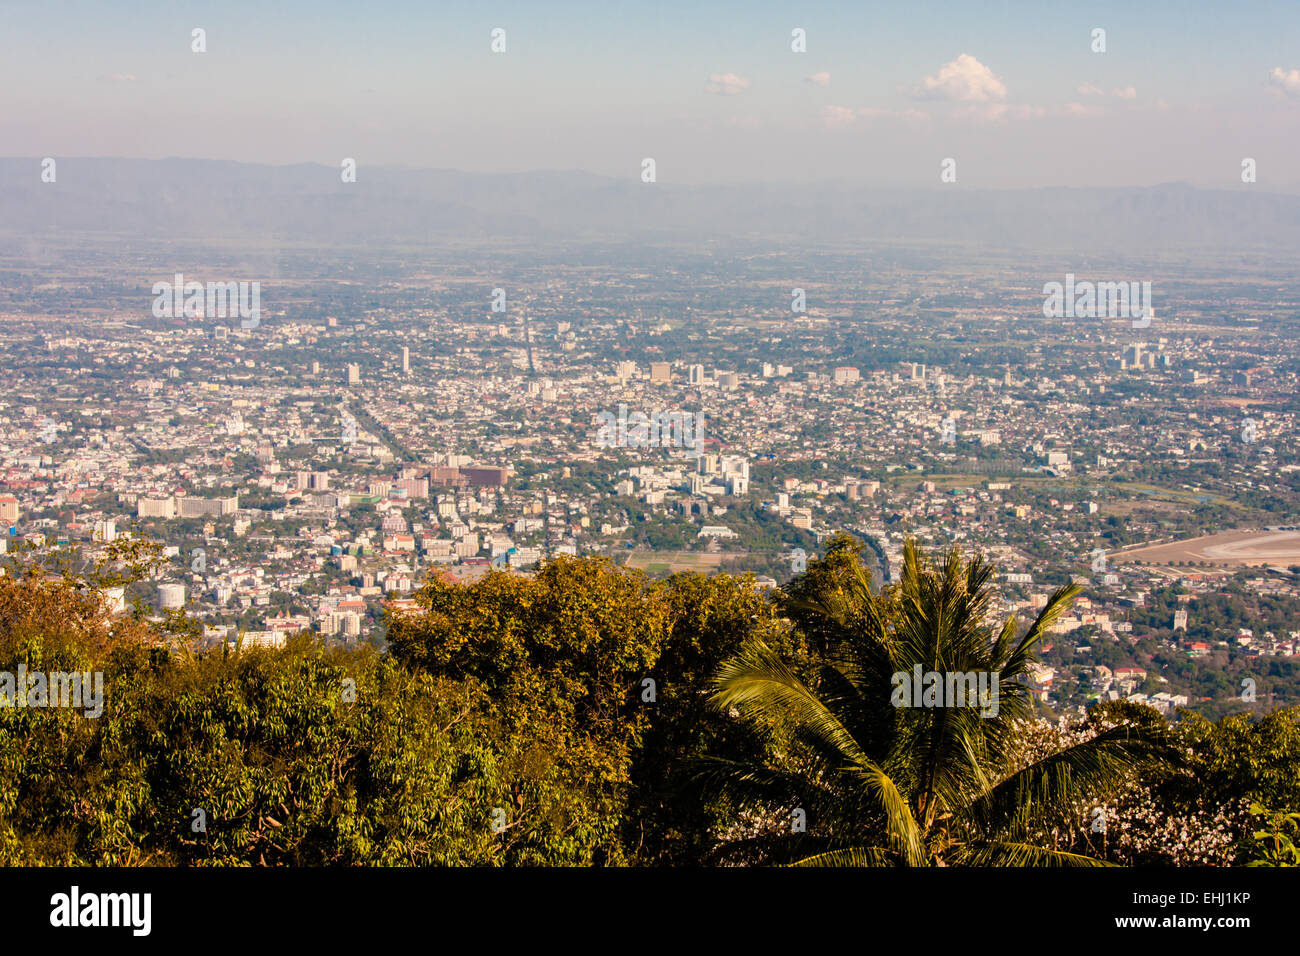 View on Chiang Mai, Thailand - Stock Image